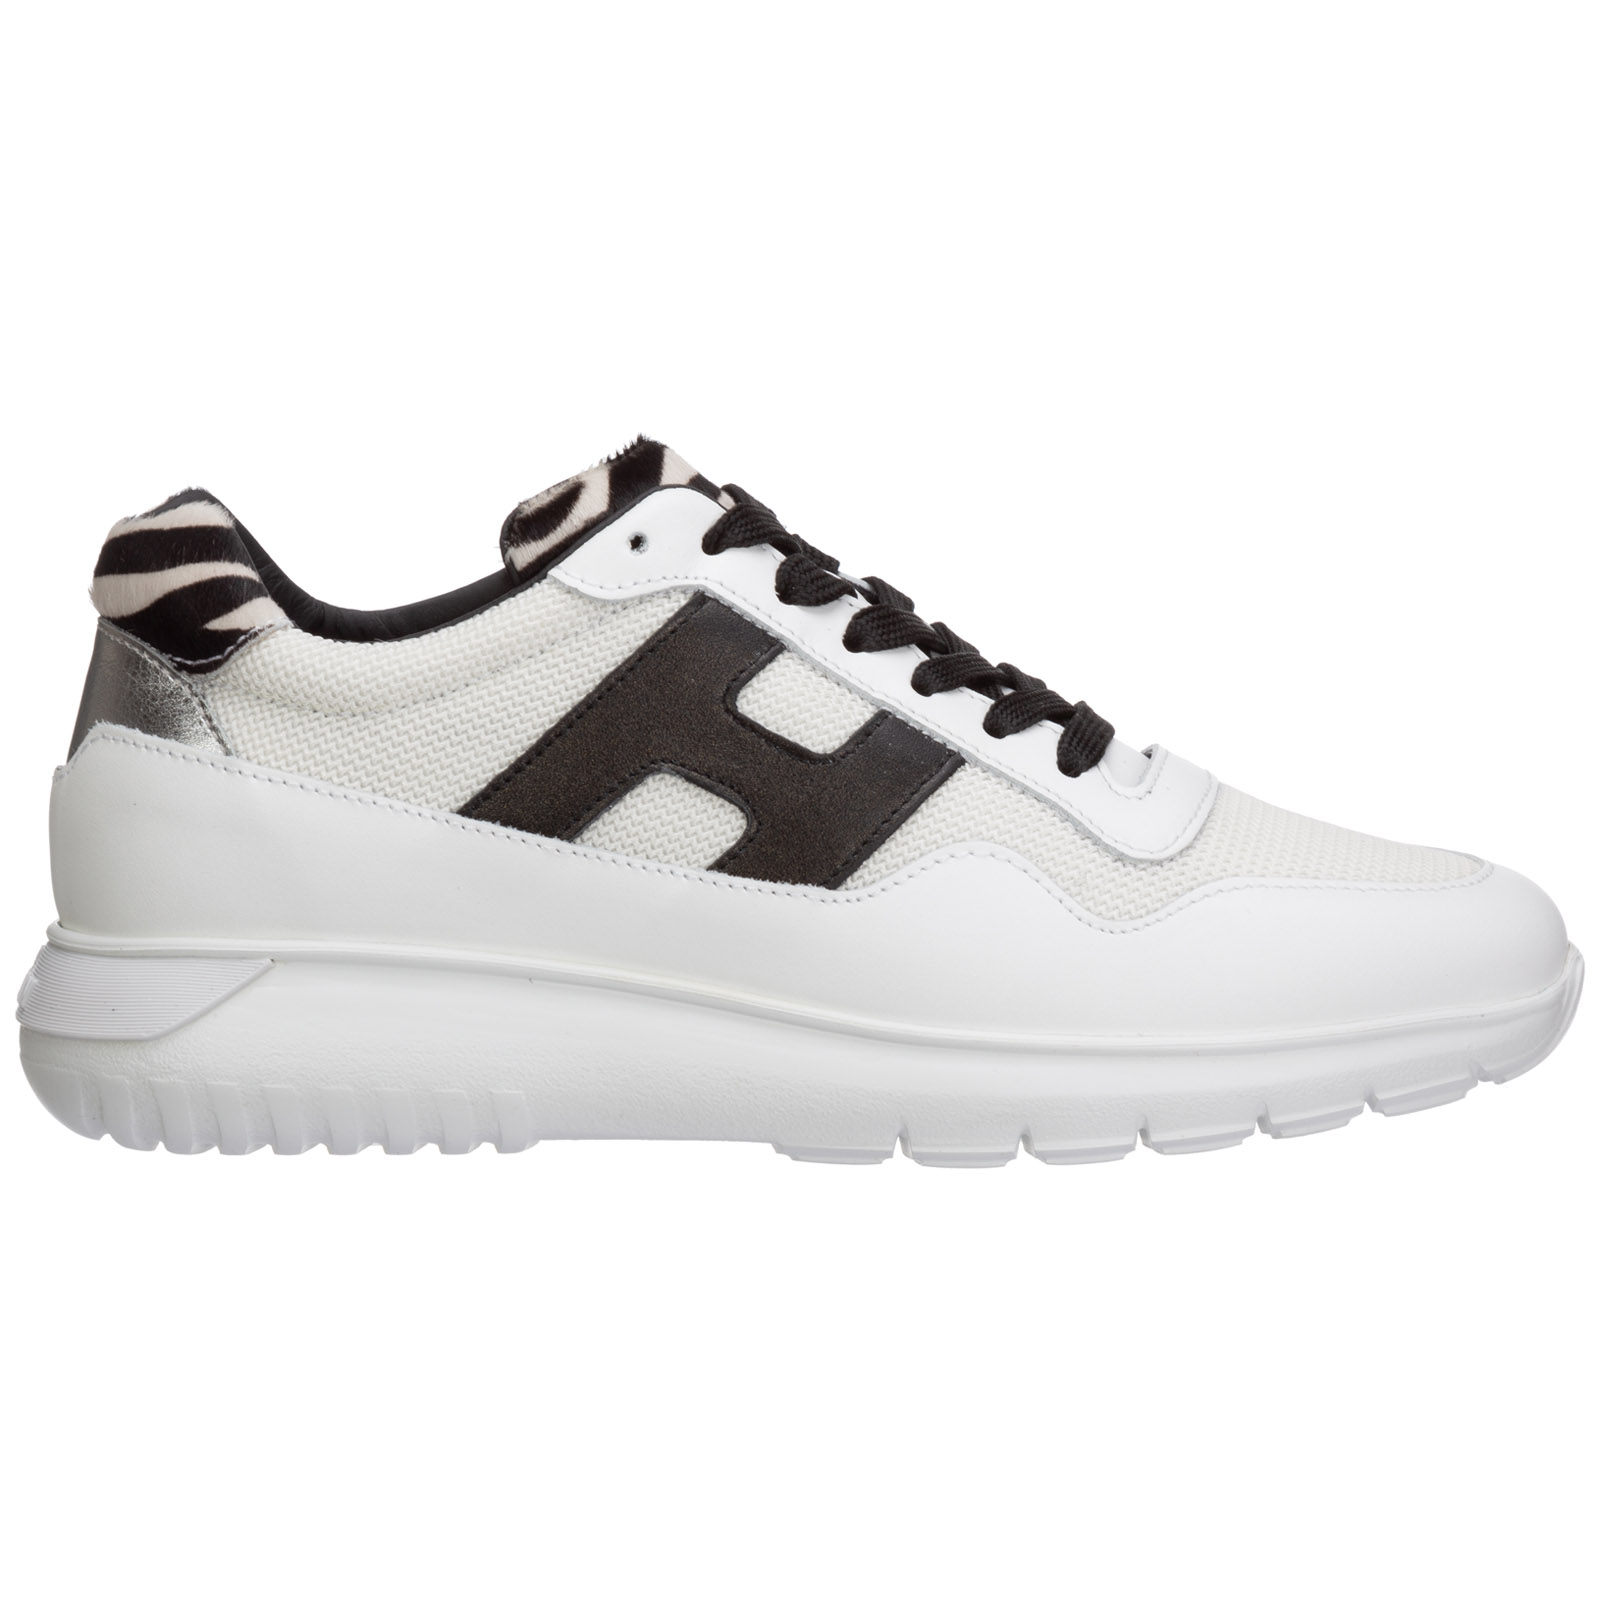 Women's shoes leather trainers sneakers interactive3 cube